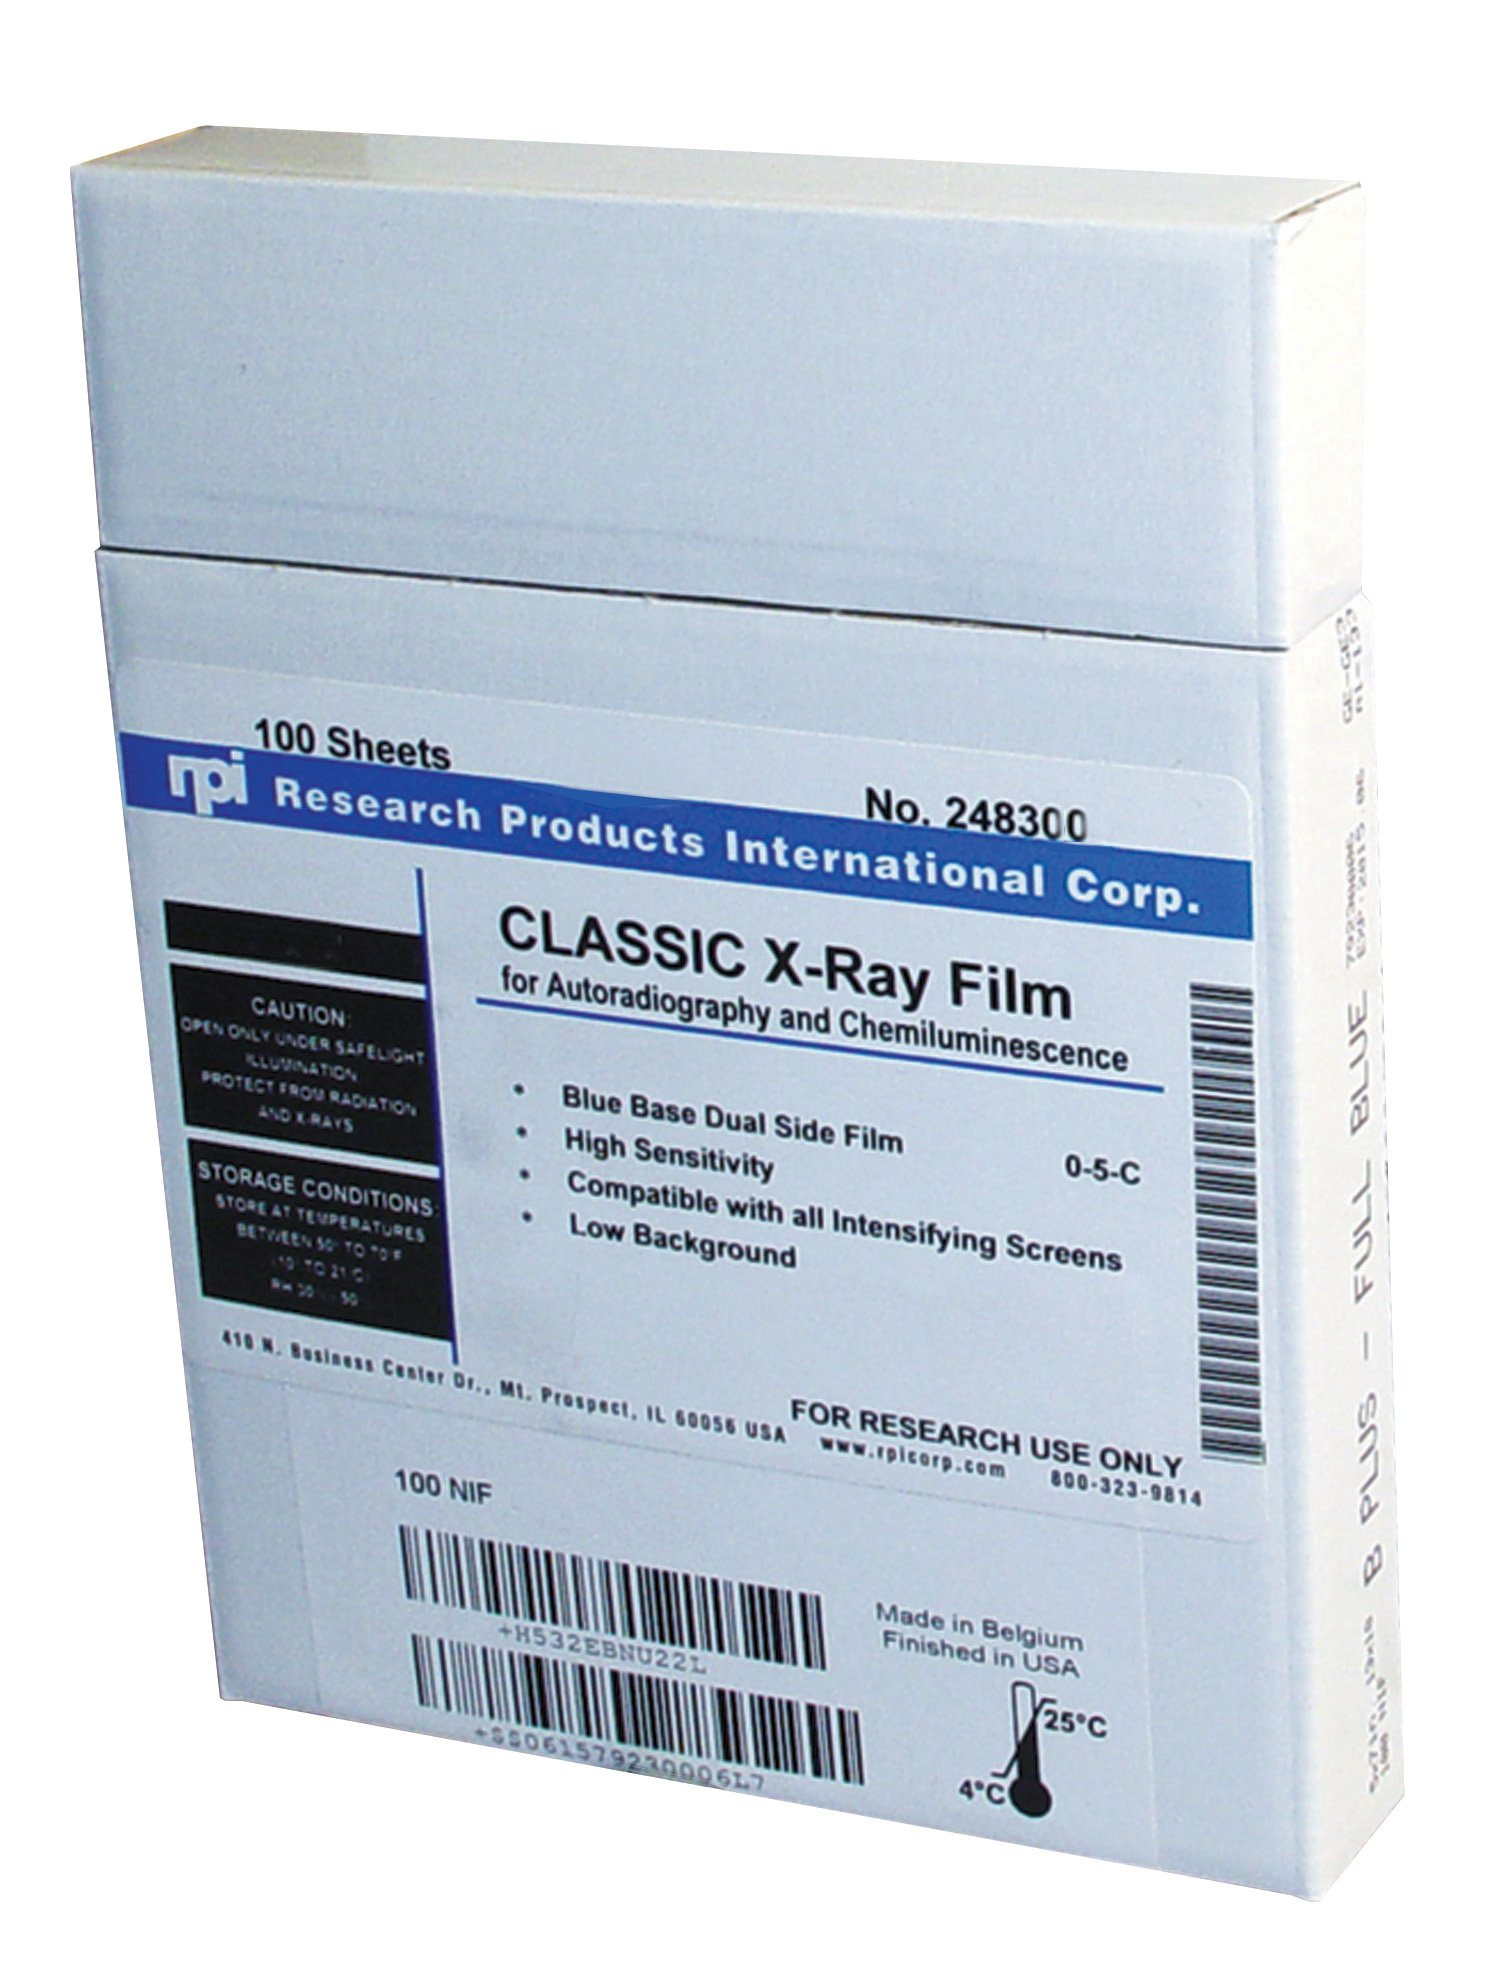 X-Ray Film, Blue Base for Autoradiography and Chemiluminescence, Non-Interleaved, 5 x 7 inch, 100 per Package